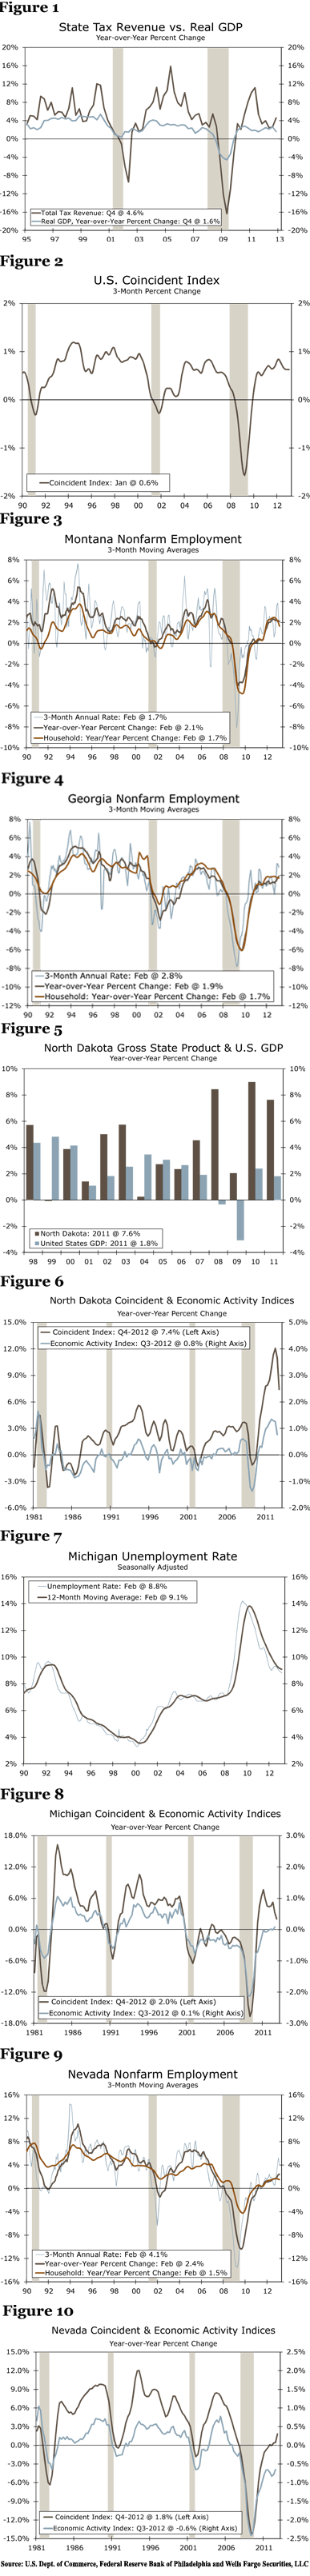 State Economic Activity Index, U.S. Dept. of Commerce, Federal Reserve Bank of Philadelphia and Wells Fargo Securities, LLC